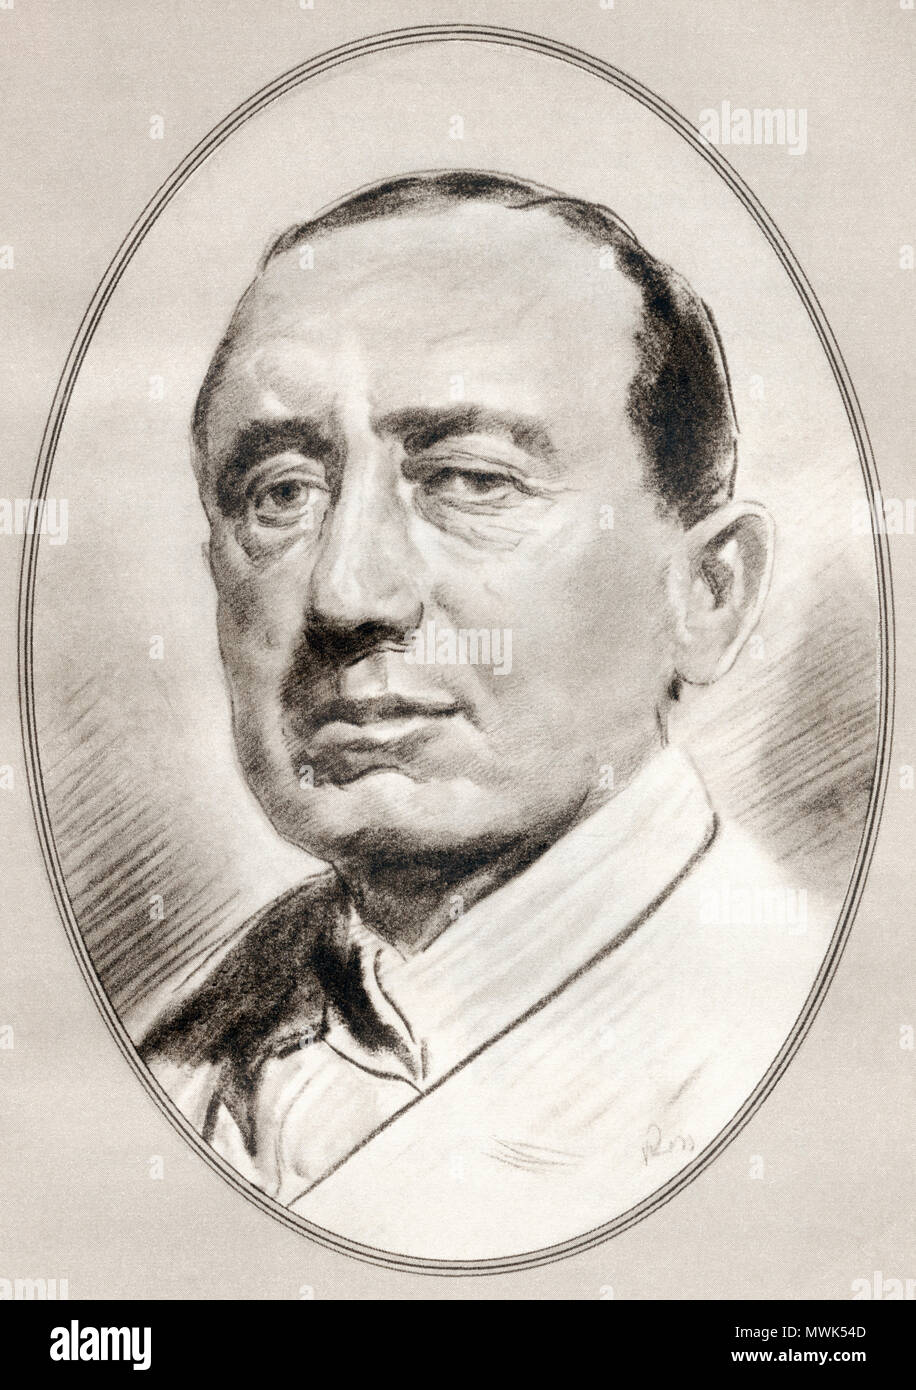 Guglielmo Marconi, 1st Marquis of Marconi, 1874 – 1937. Italian inventor and electrical engineer.  Illustration by Gordon Ross, American artist and illustrator (1873-1946), from Living Biographies of Famous Men. Stock Photo